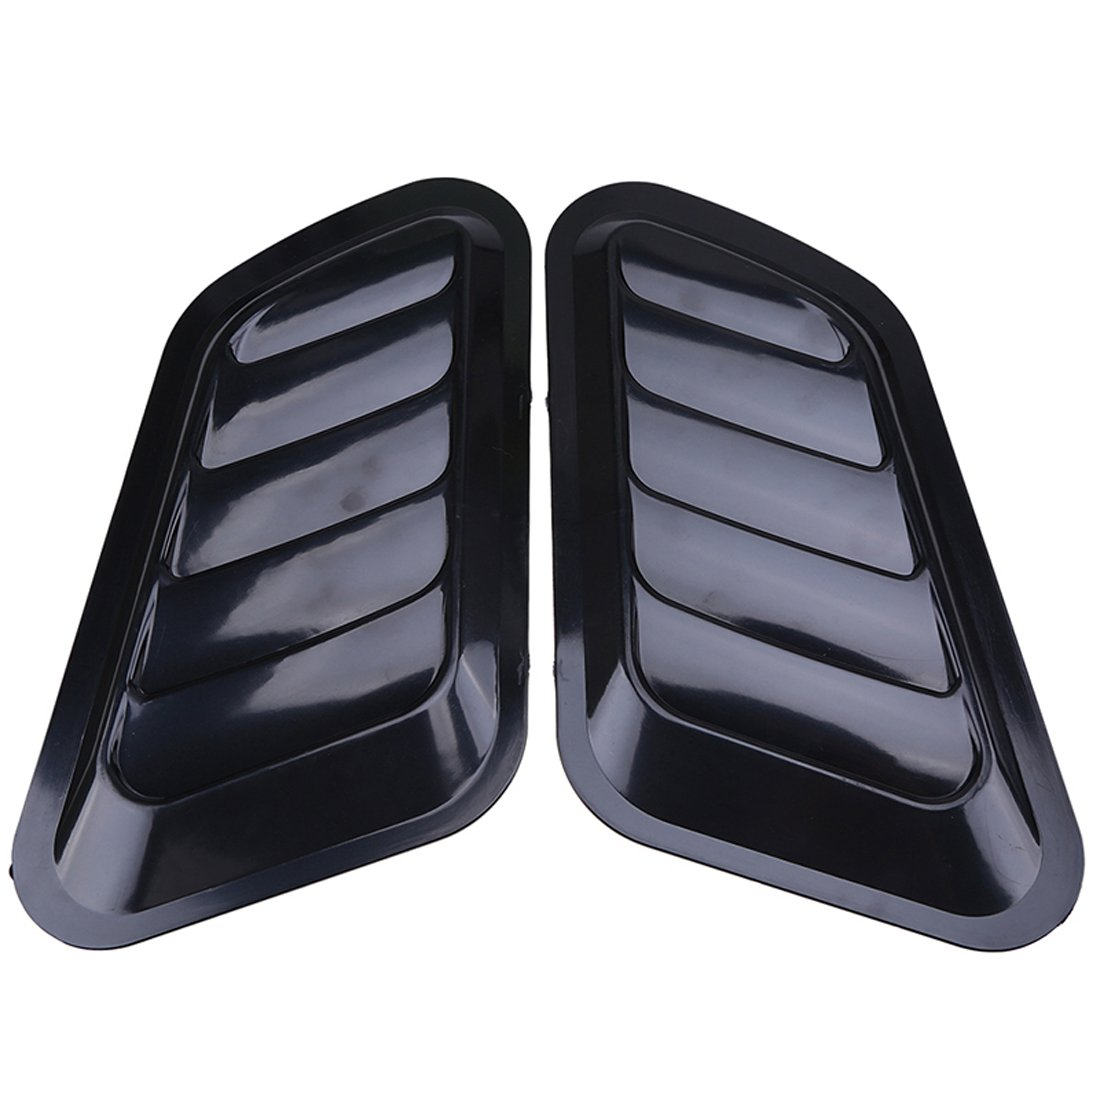 ABS auto decorativo di aspirazione scoop Turbo Bonnet Vent copertura cappuccio nero One pair RGAta